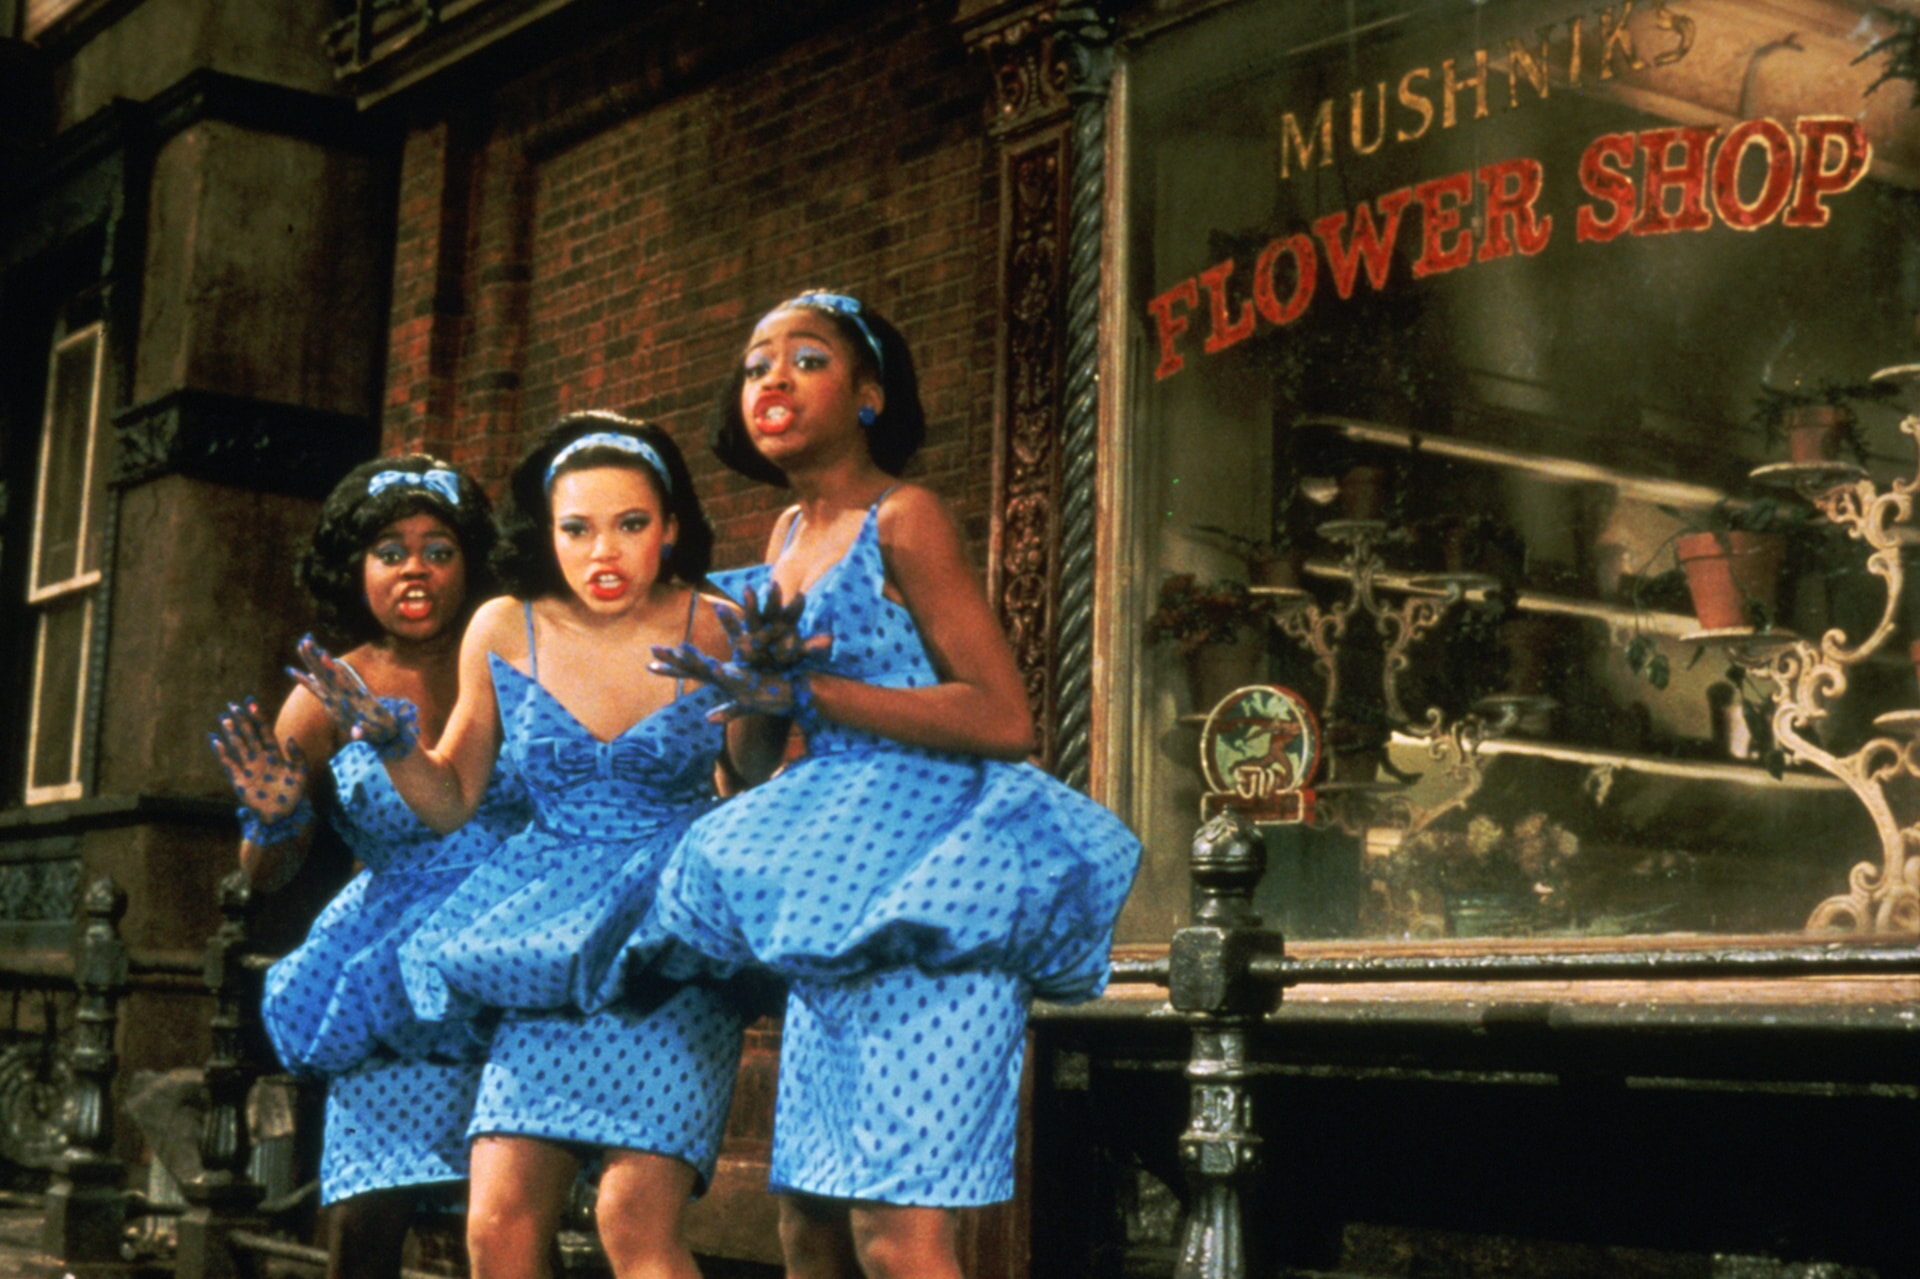 Little Shop of Horrors - Image 12